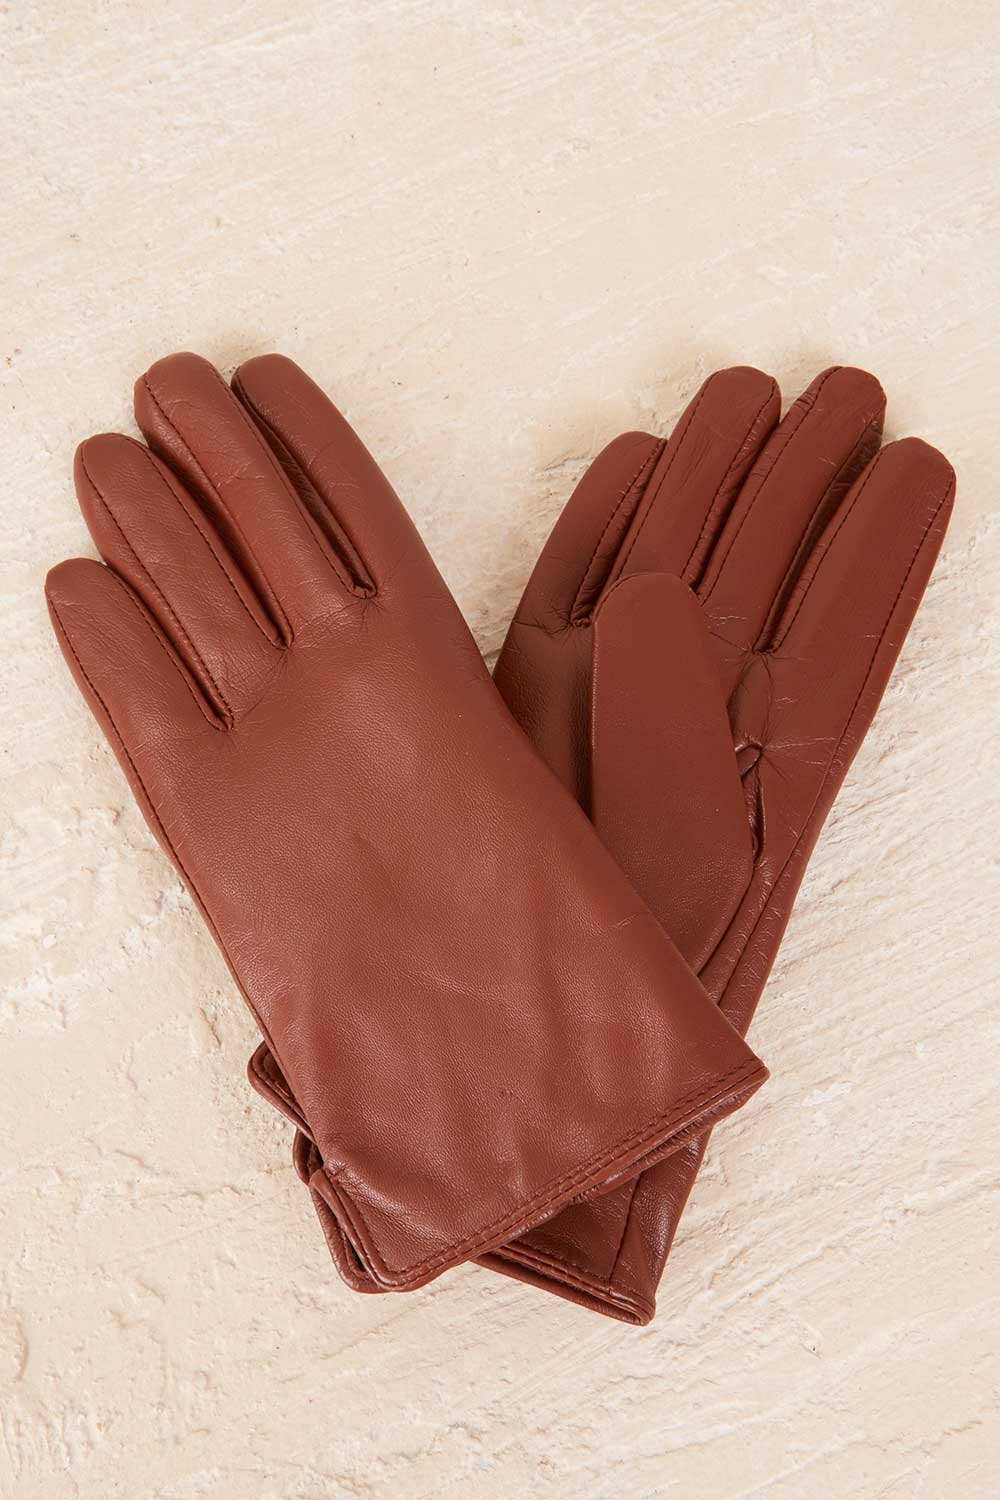 Womens leather gloves australia - New Dents Australia Womens Gloves Classic Leather Gloves